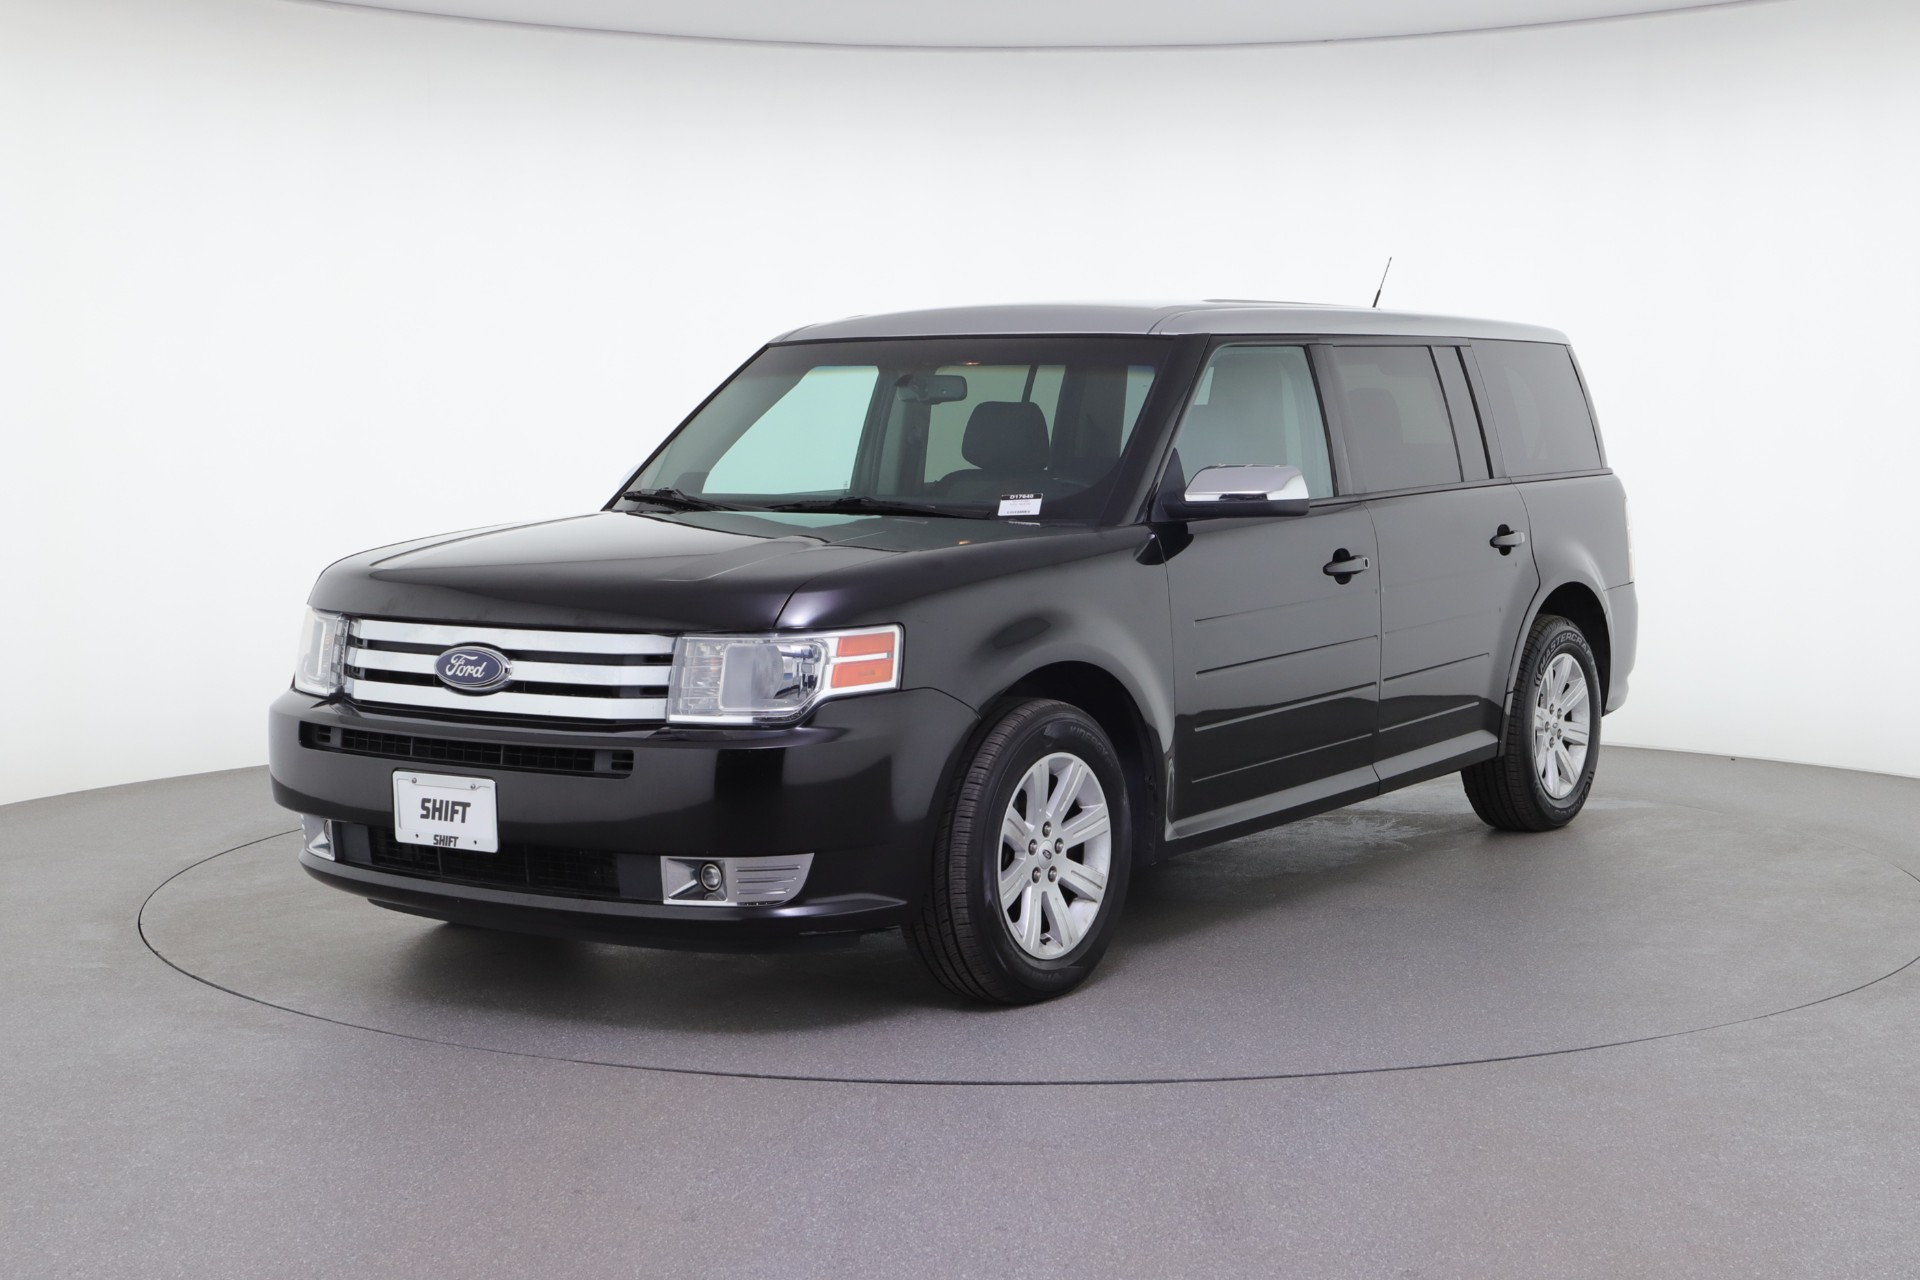 2012 Ford Flex SE (from $12,450)